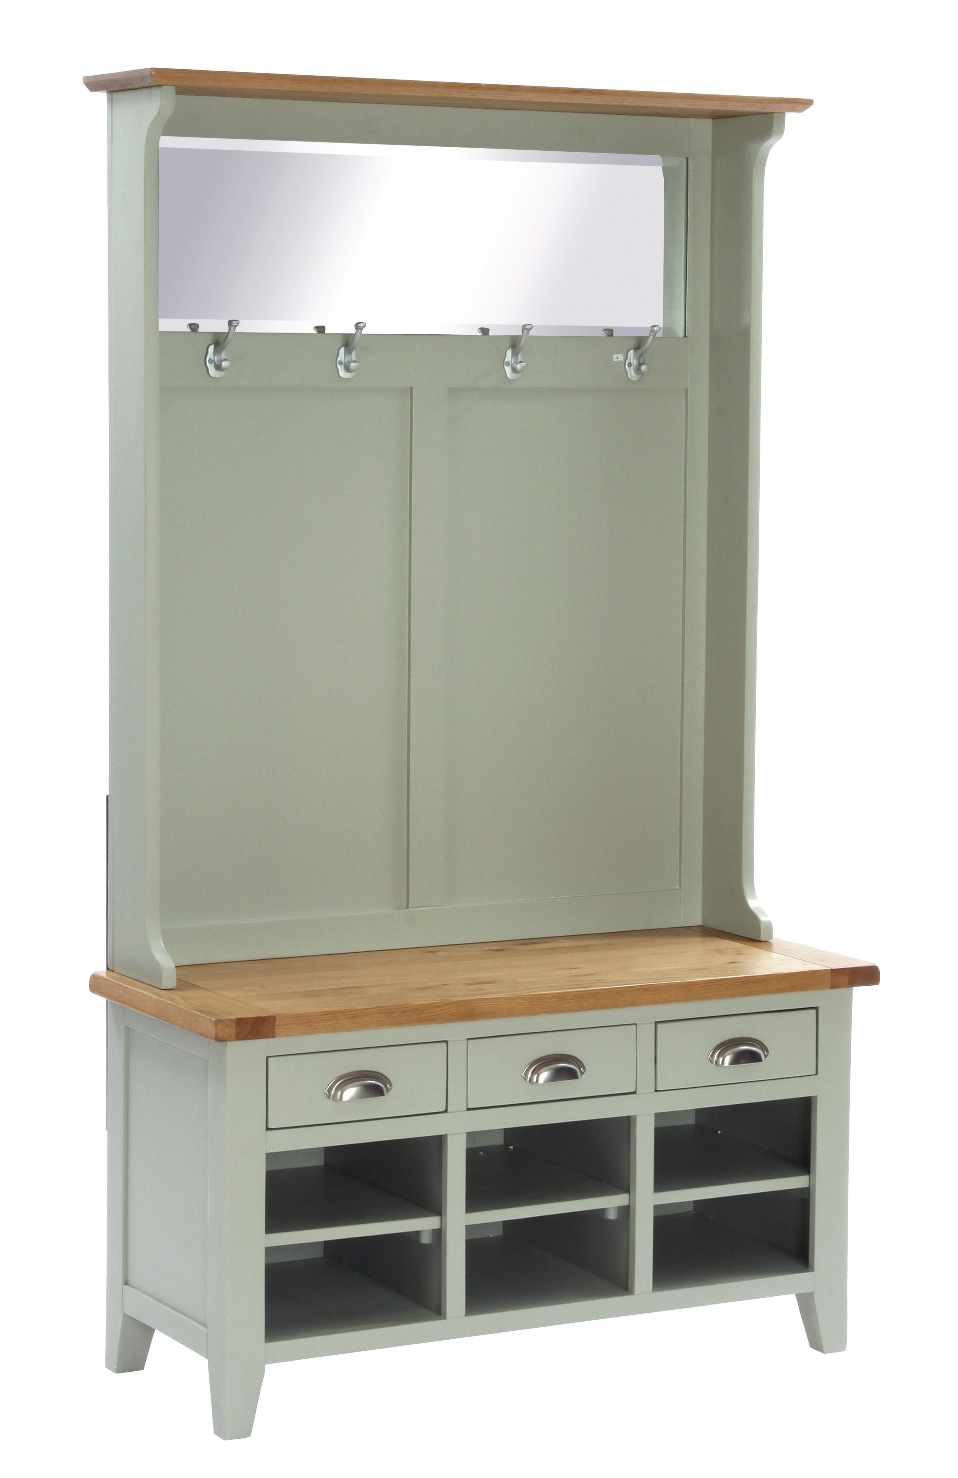 HALL TIDY WITH BENCH, SHOE STORAGE, COAT RACK AND MIRROR w 110 x d 45 x h 190 cm € 840 Product Code: ANB115